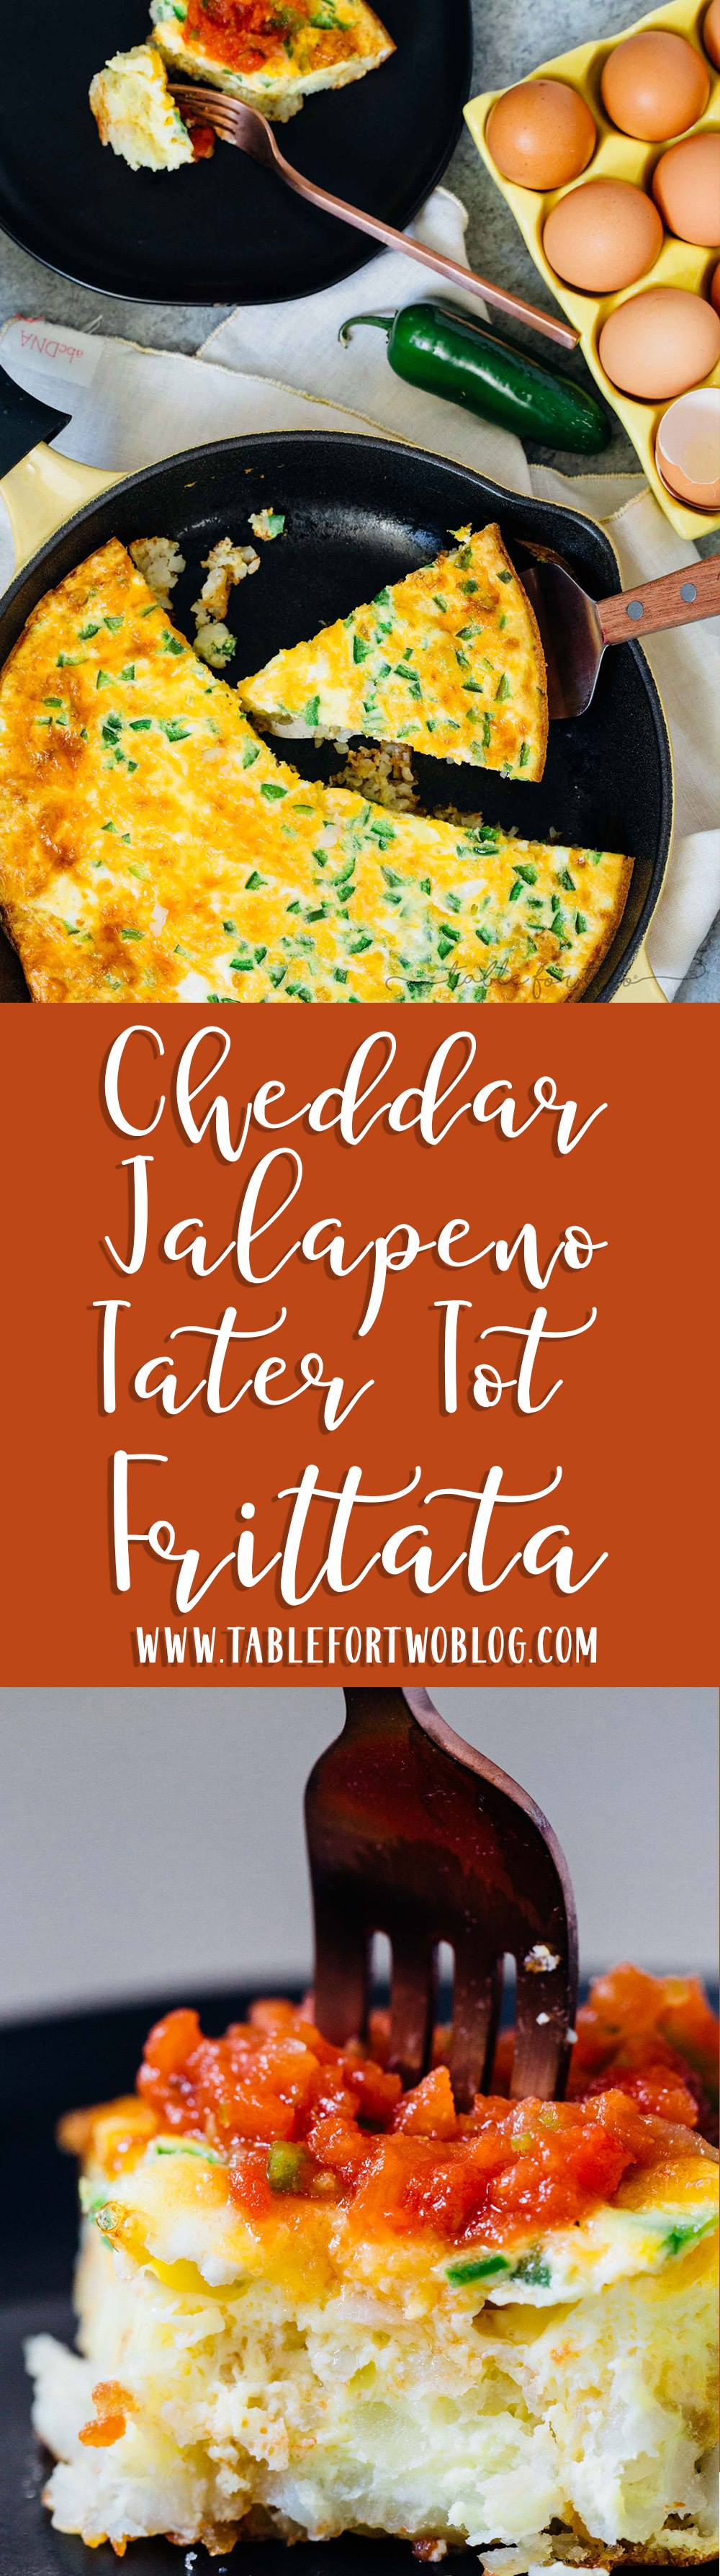 This cheddar jalapeno tater tot frittata has everything you want in one dish! Your entire breakfast is cooked in one skillet and the tater tot crust is crispy and THE BEST PART of this frittata!